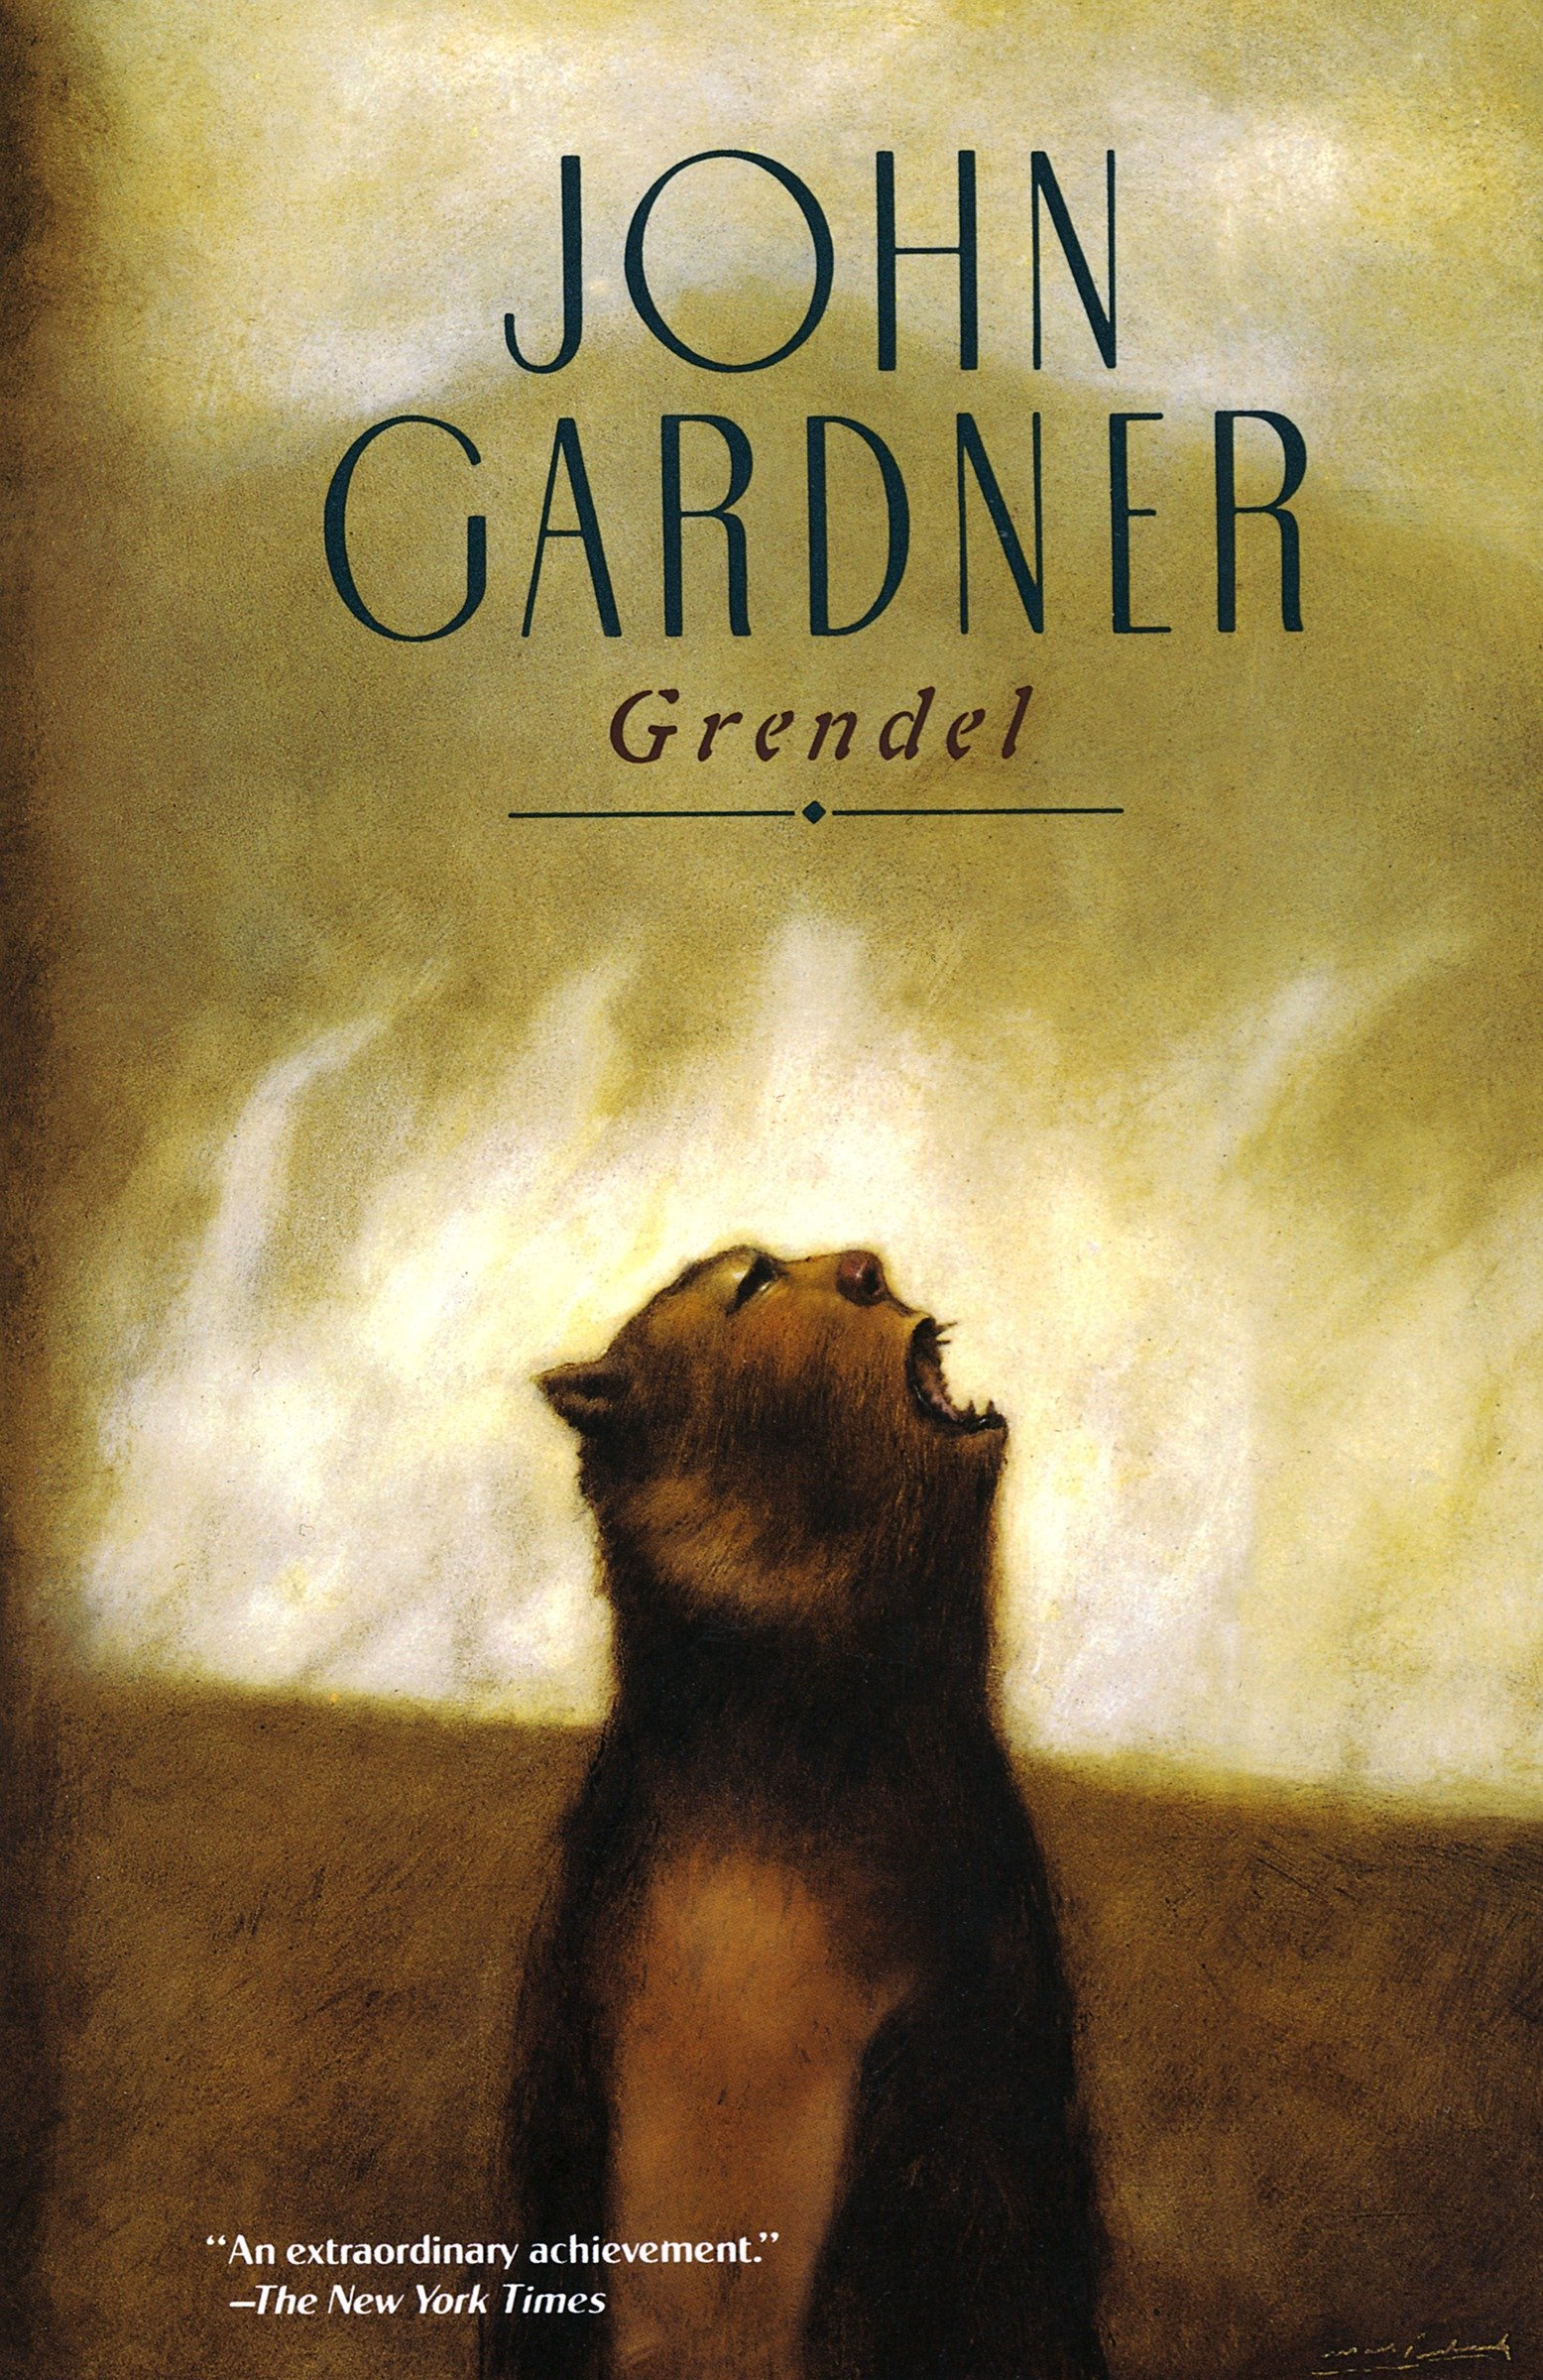 Image of cover of Grendel by John Gardner